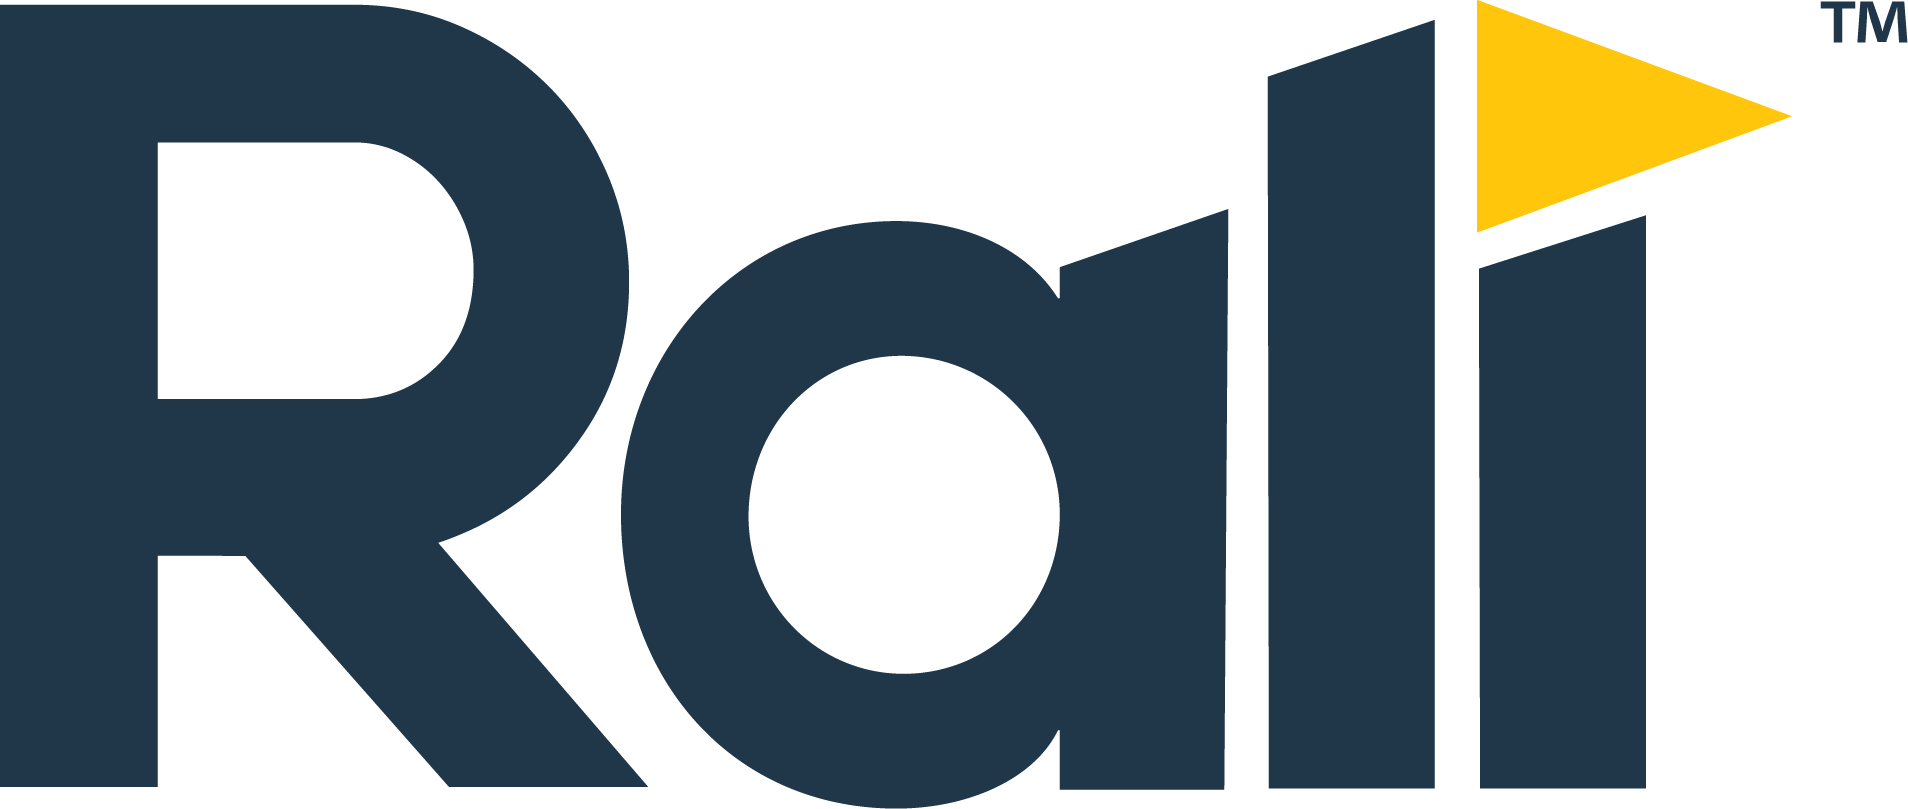 Rali's integration with Zoom extends life and usefulness of recorded webinars and calls.